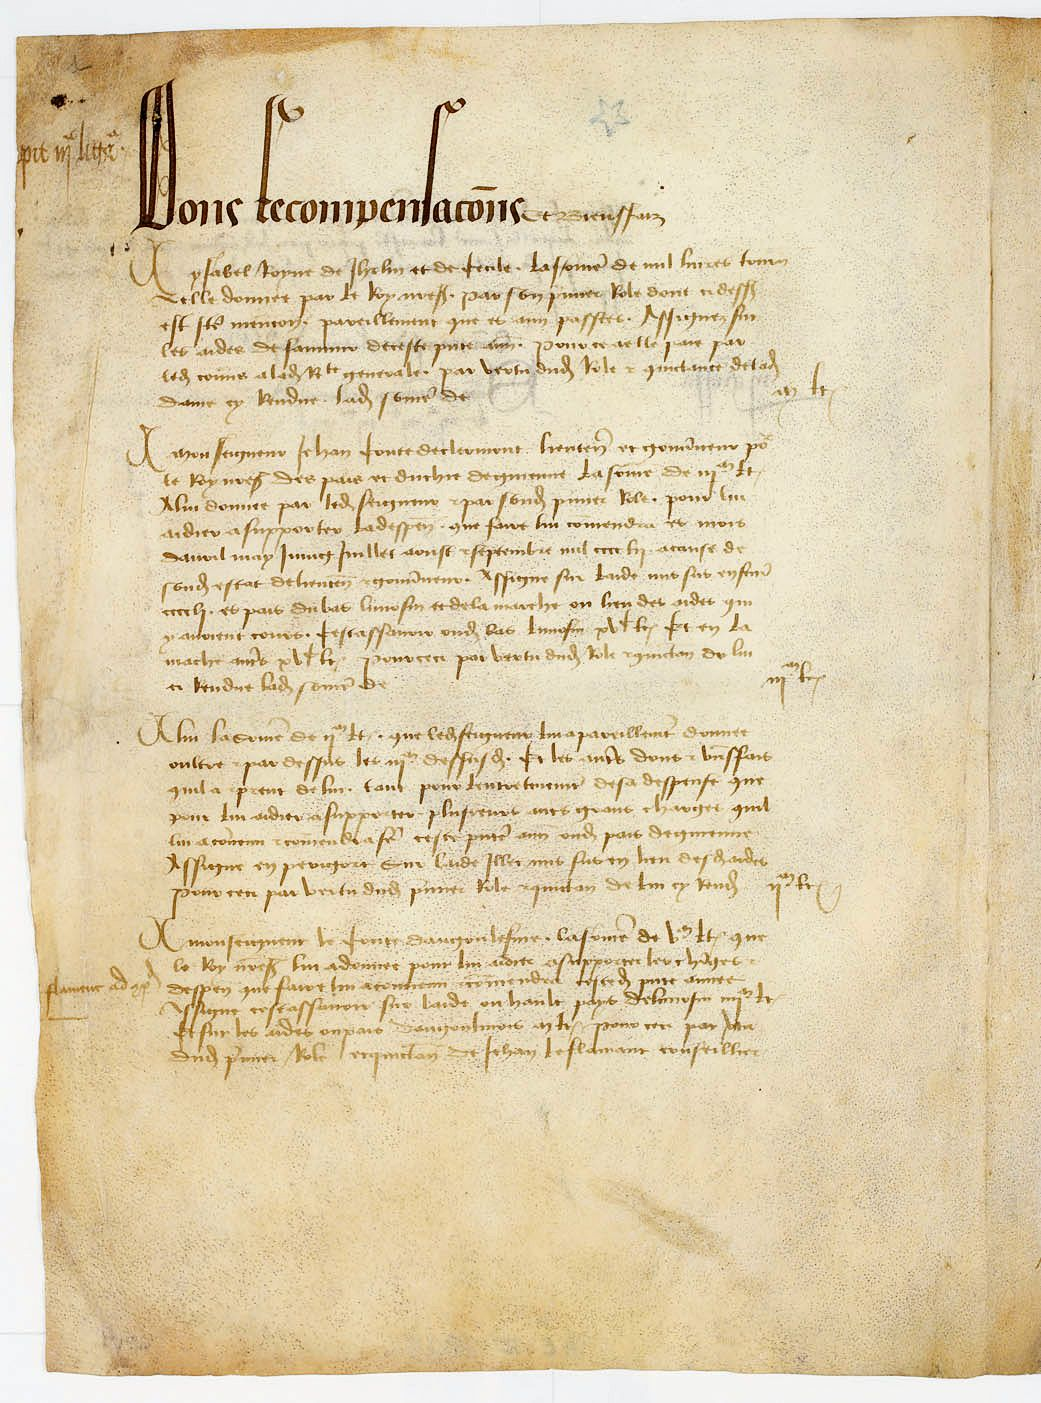 Pre-trial investigation rehabilitation of Jeanne d Arc. Parchment, 1452.